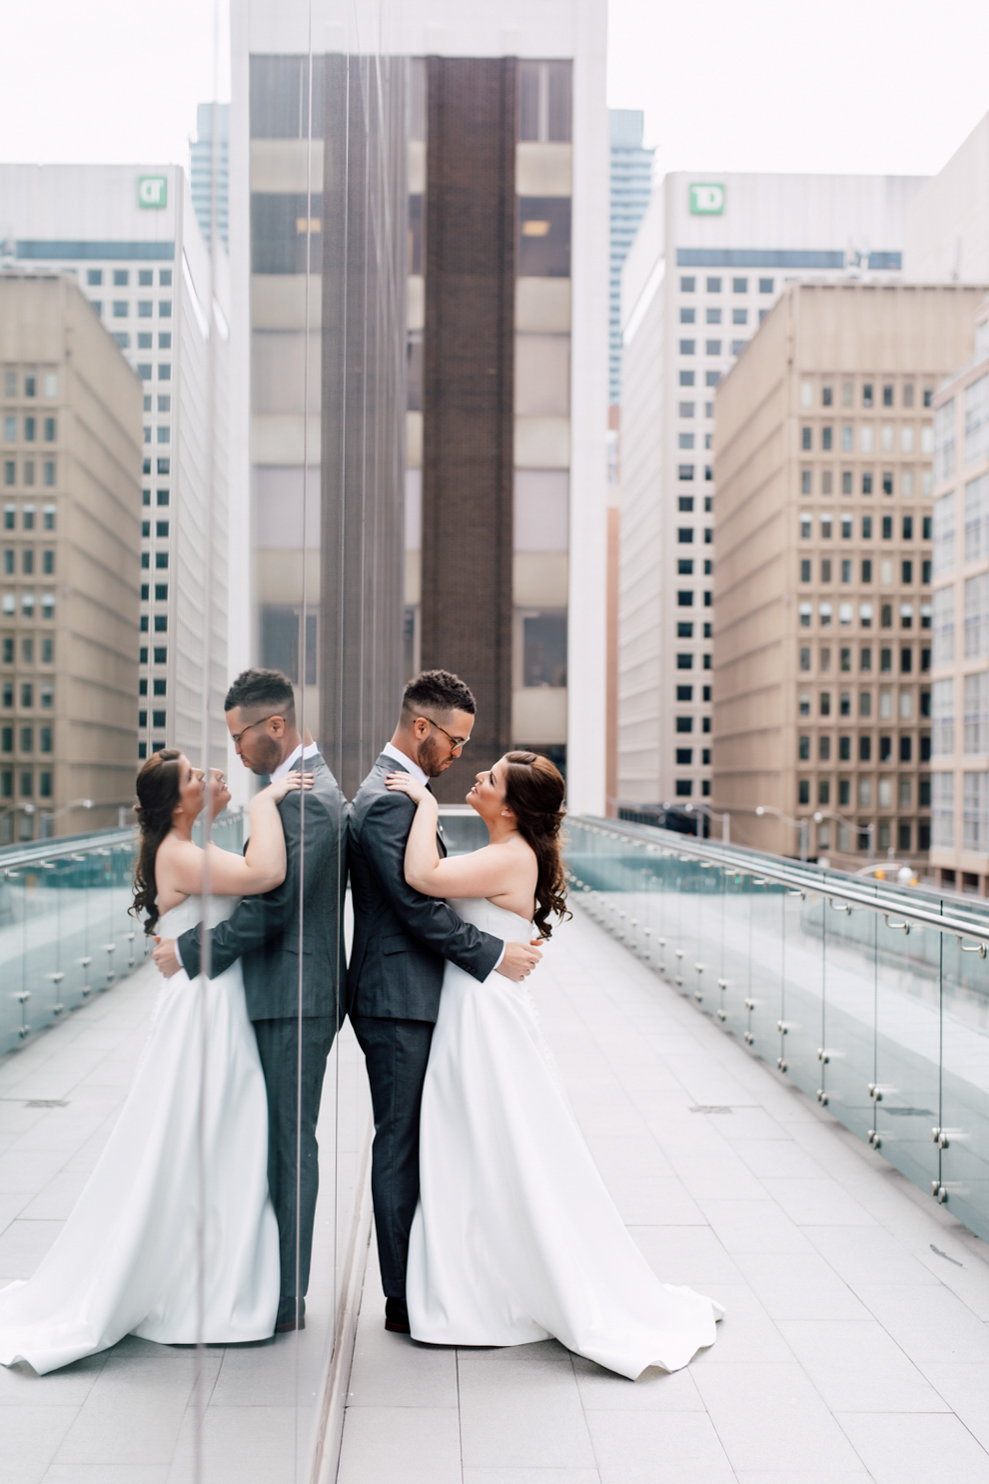 downtown wedding portrait